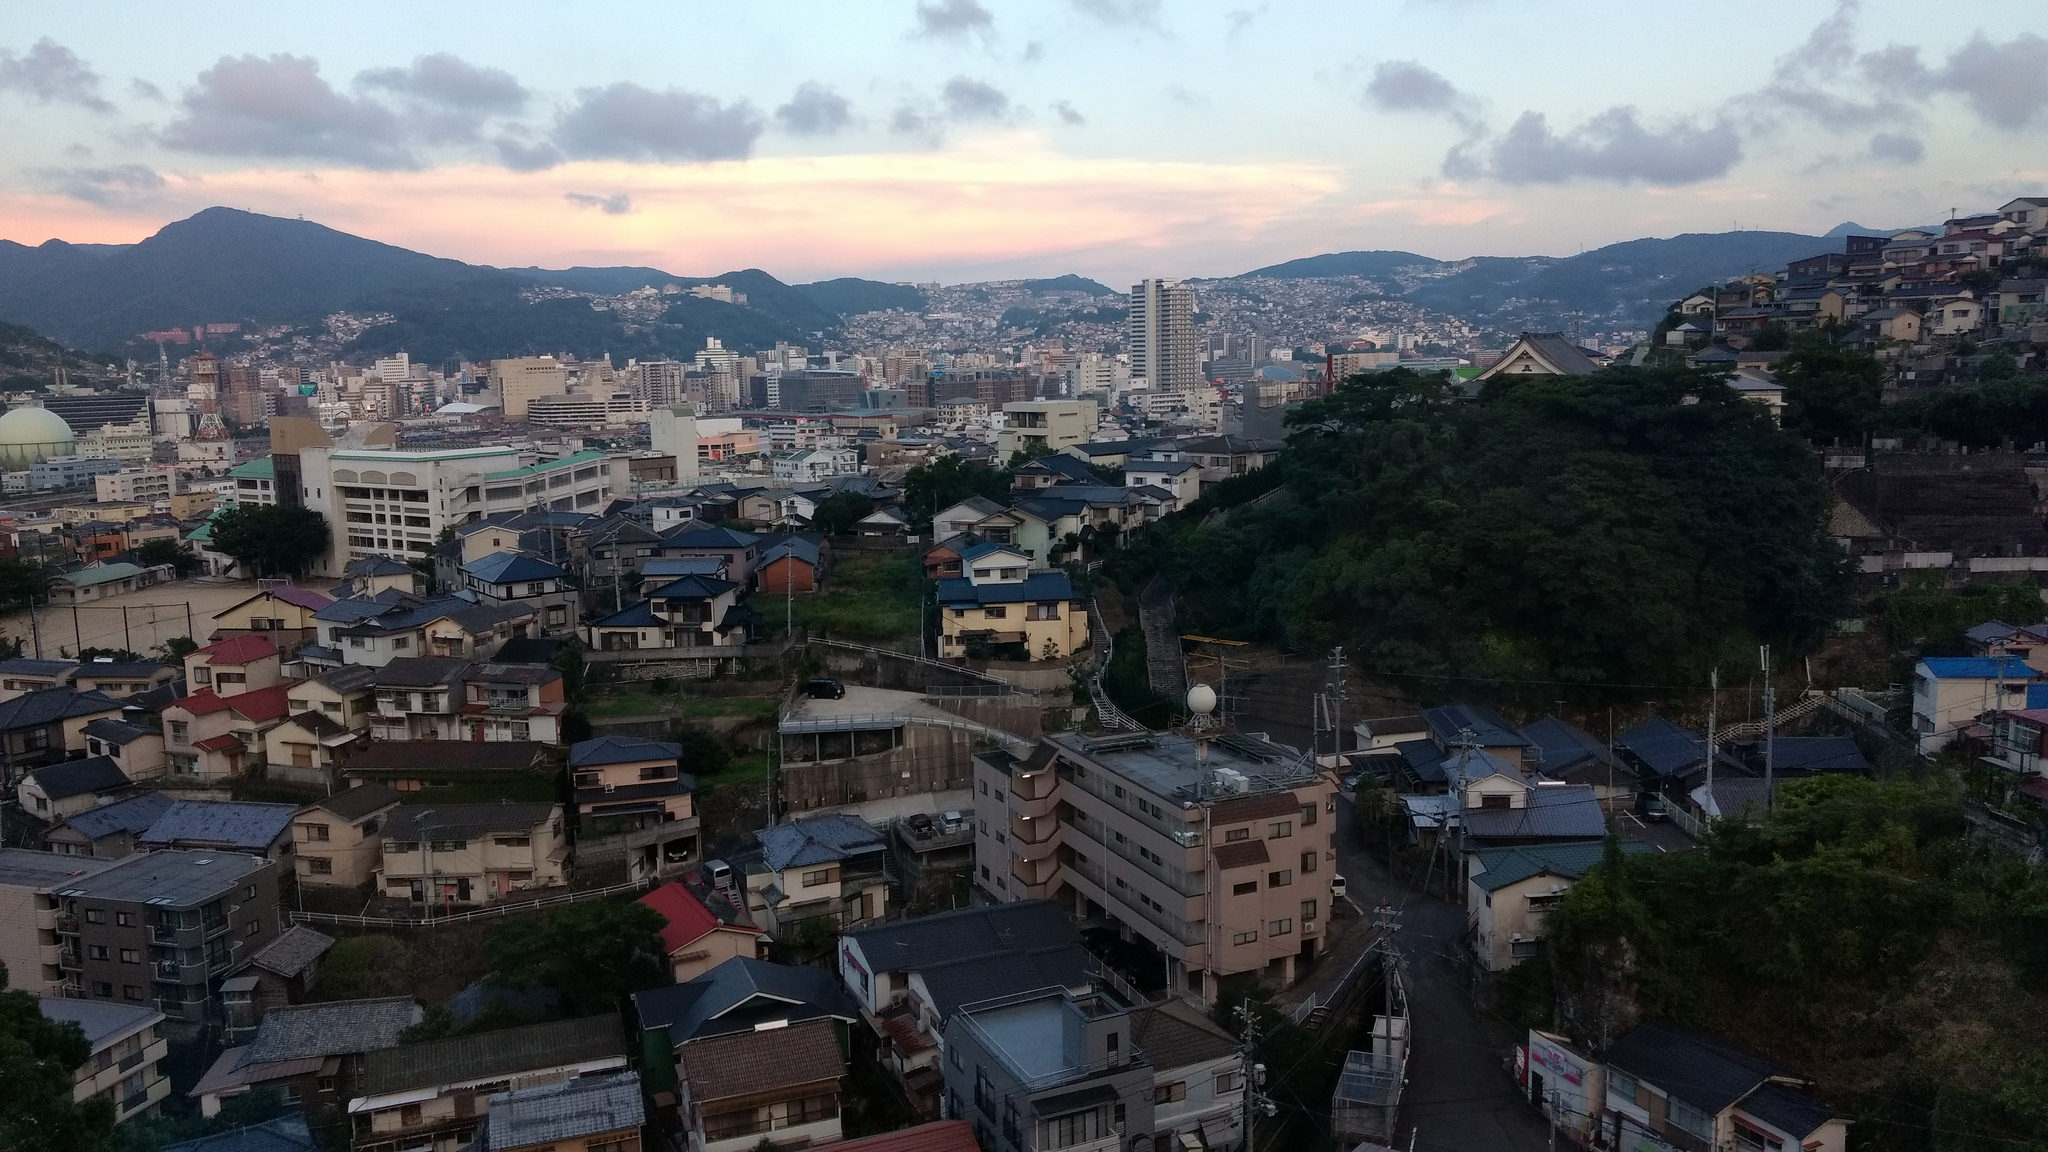 Nagasaki – Japan's window to the world